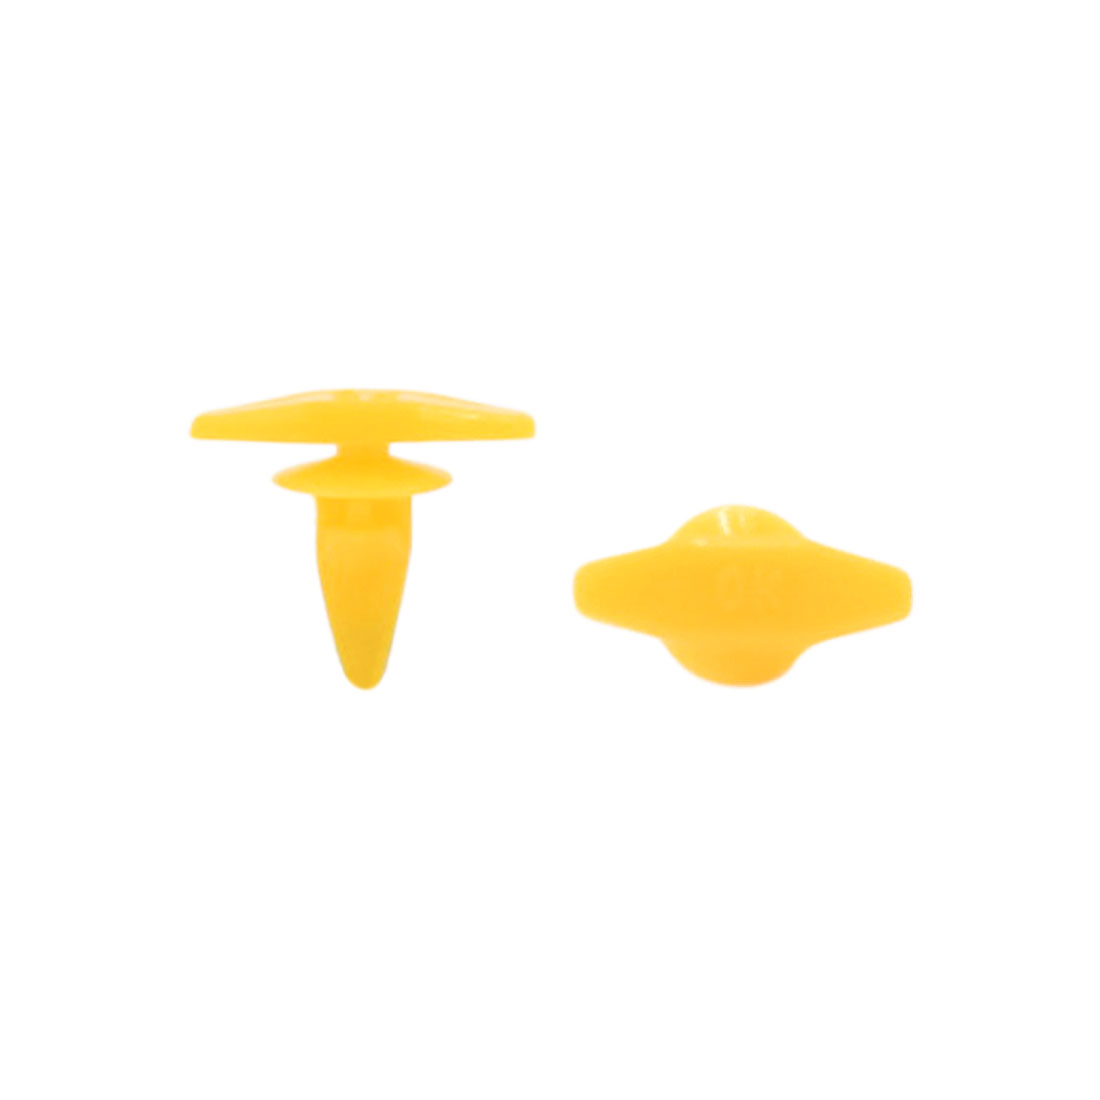 6.5mm Hole Yellow Plastic Car Bumper Splash Guard Clips Rivet Fastener 20PCS